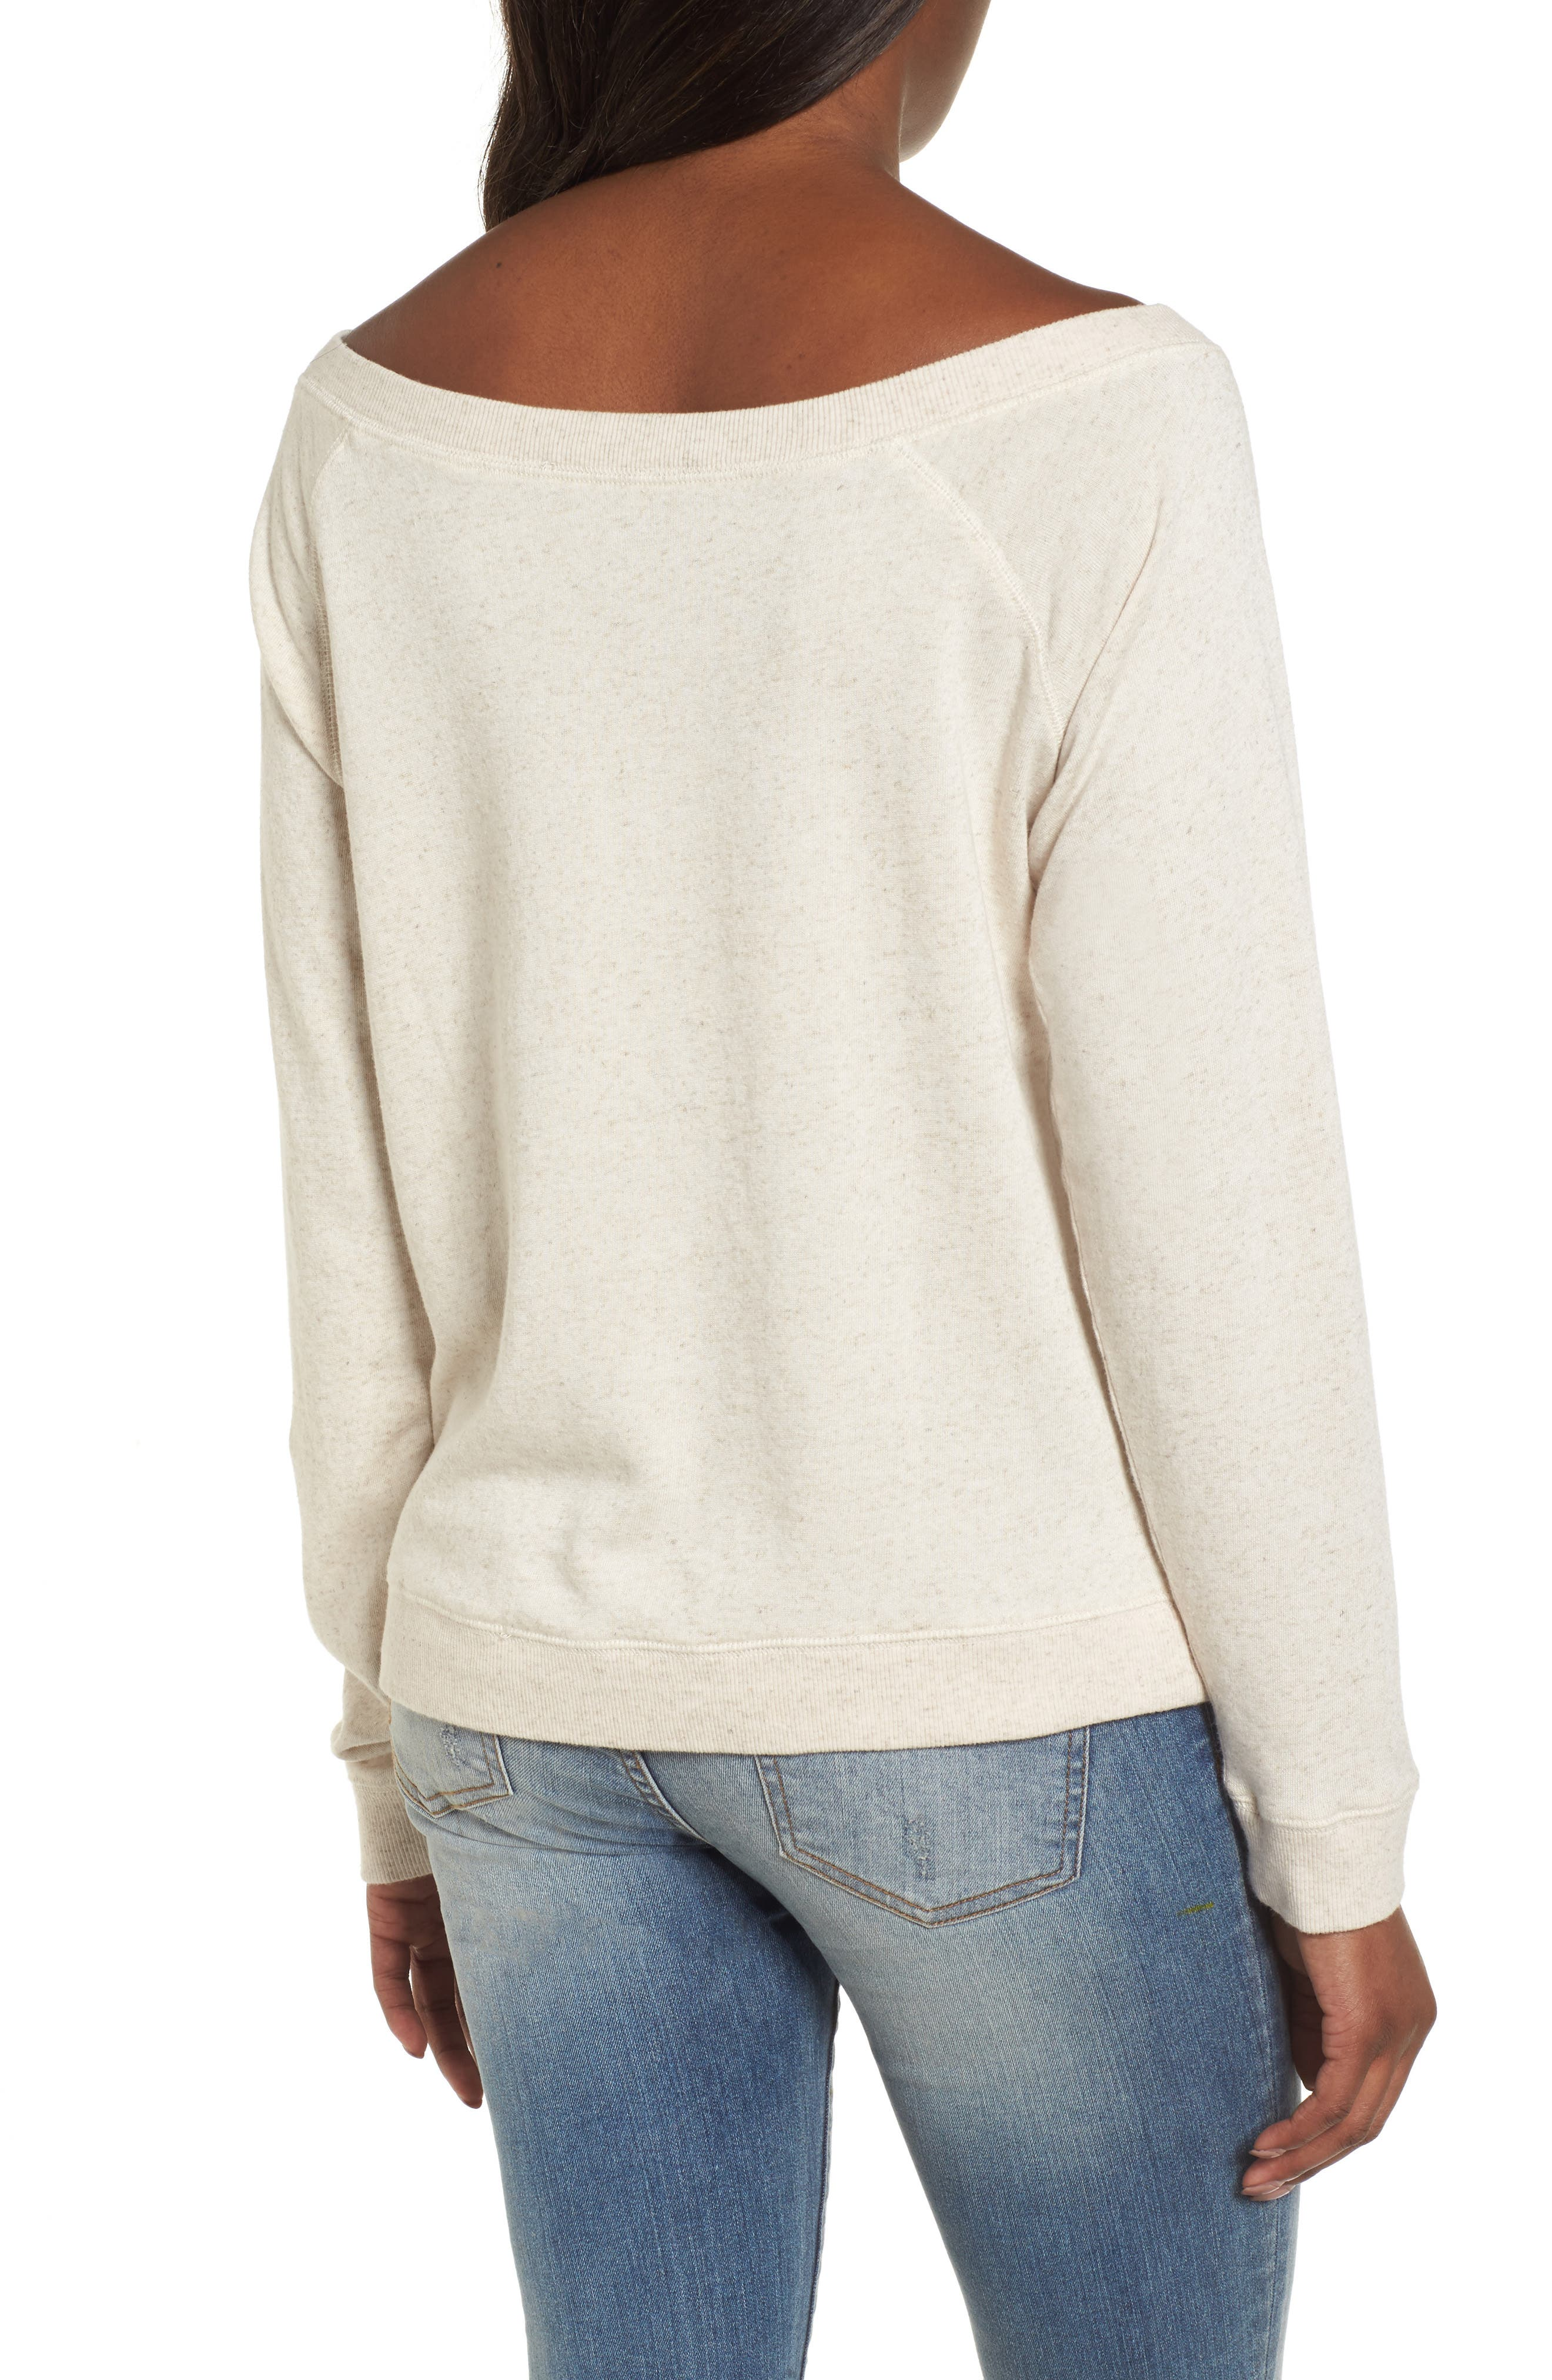 Embroidered Rose Sweatshirt,                             Alternate thumbnail 2, color,                             901